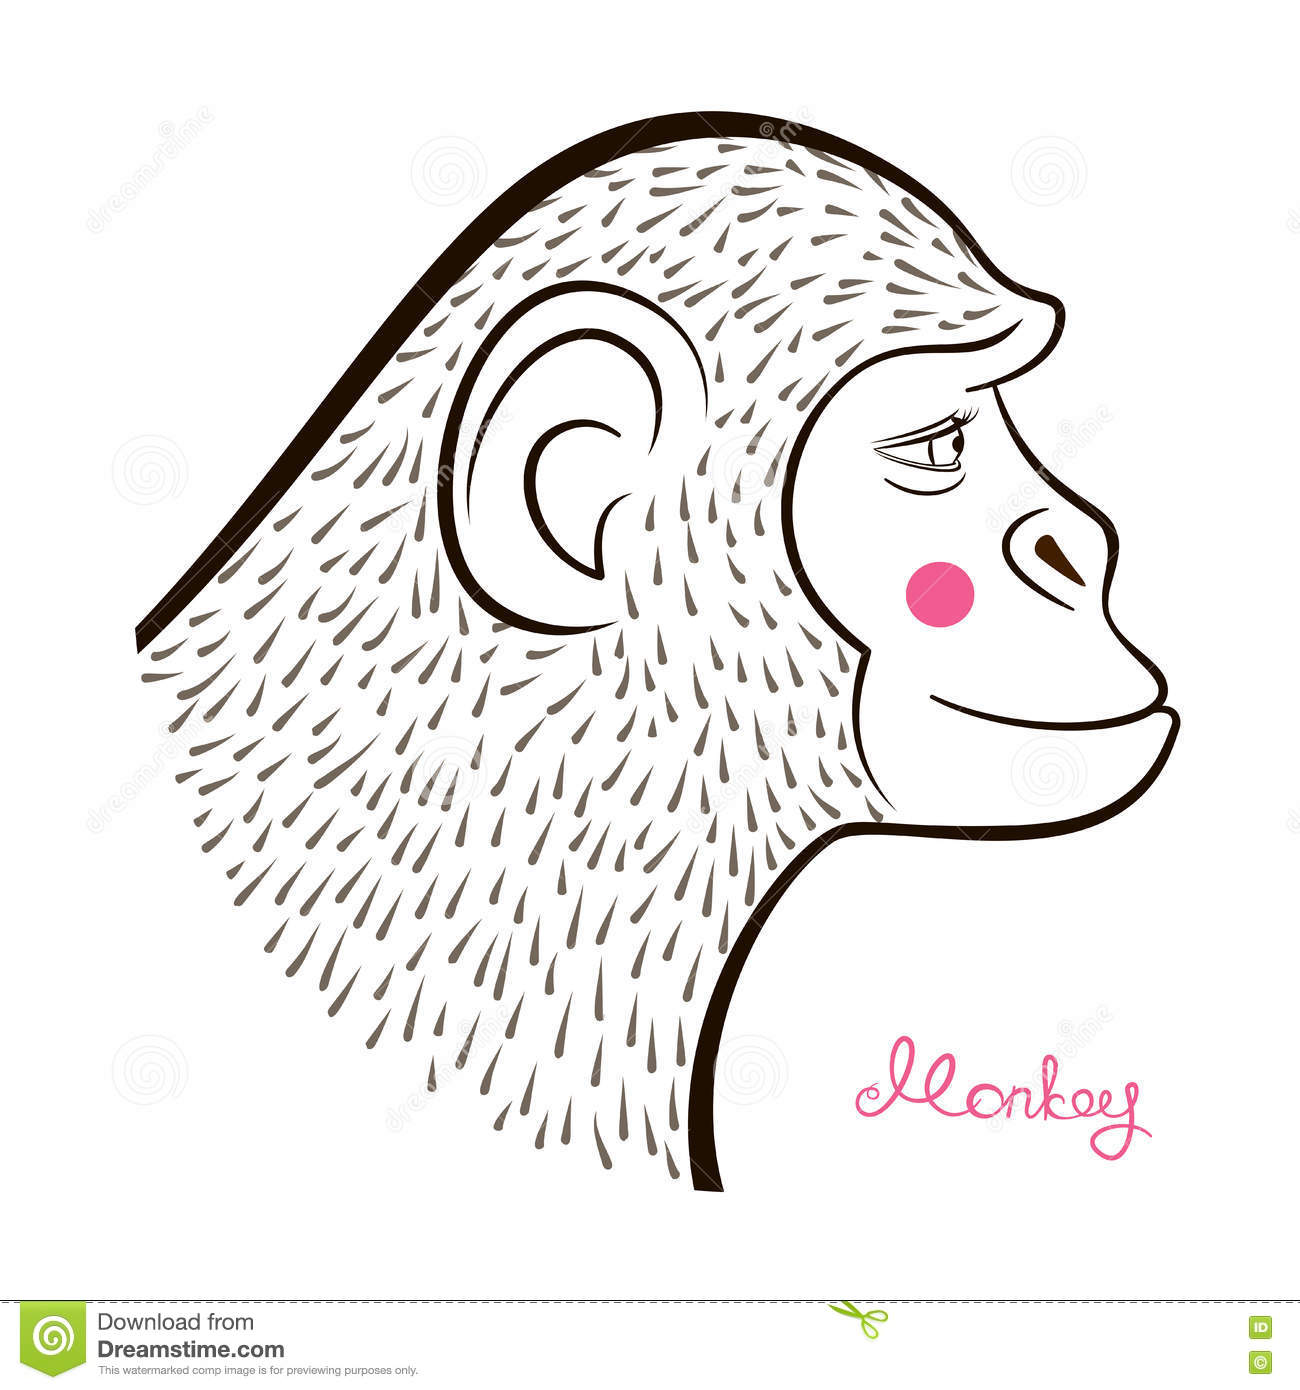 Pencil drawing monkey in hatching equipment outline cartoon character face in profile and calligraphy inscription vector illustration in doodle style